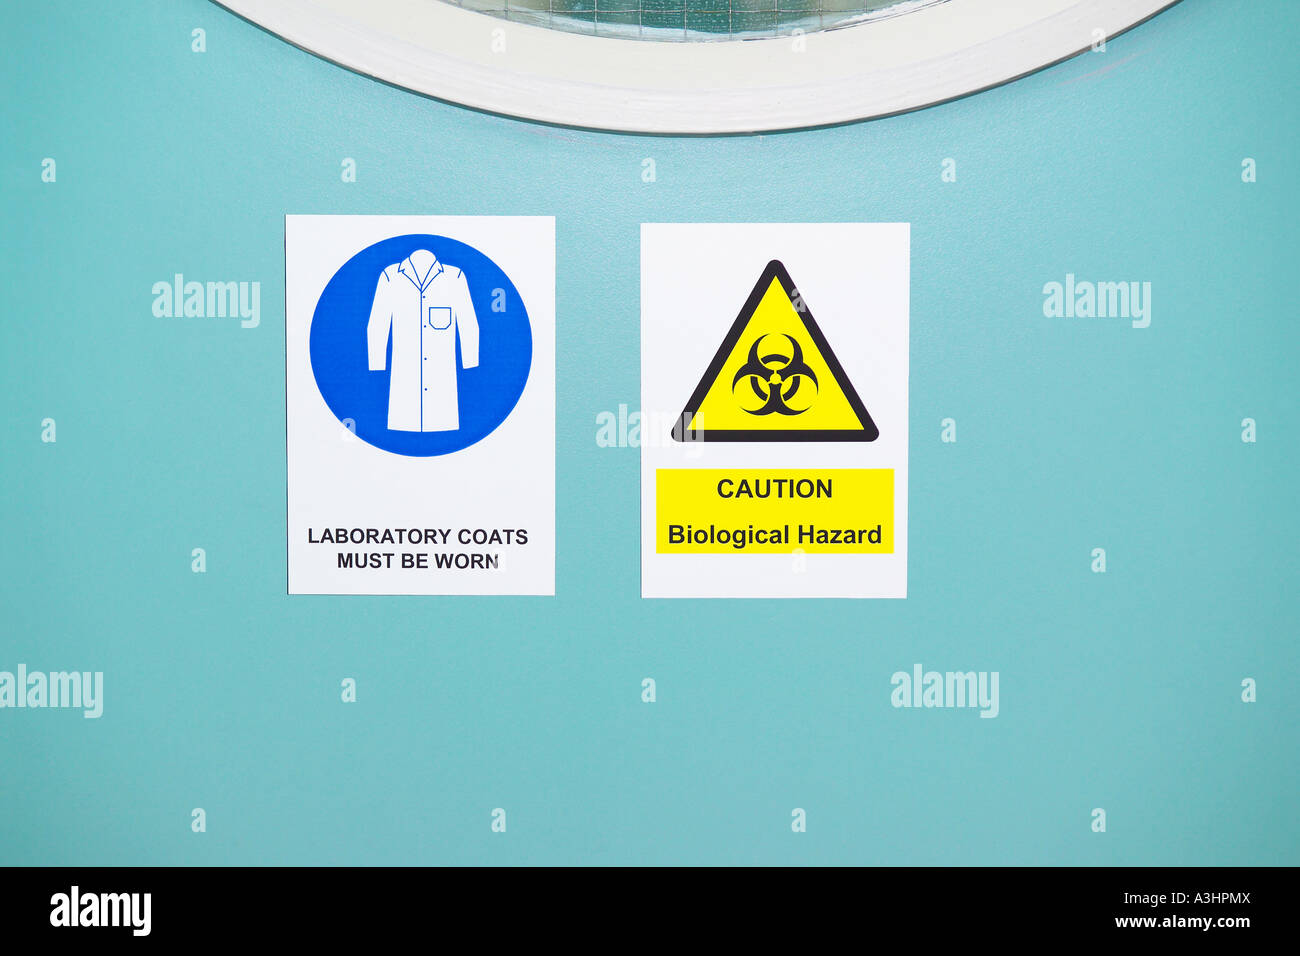 Laboratory Coats must be worn and Biological Hazard sign on door to laboratory - Stock Image